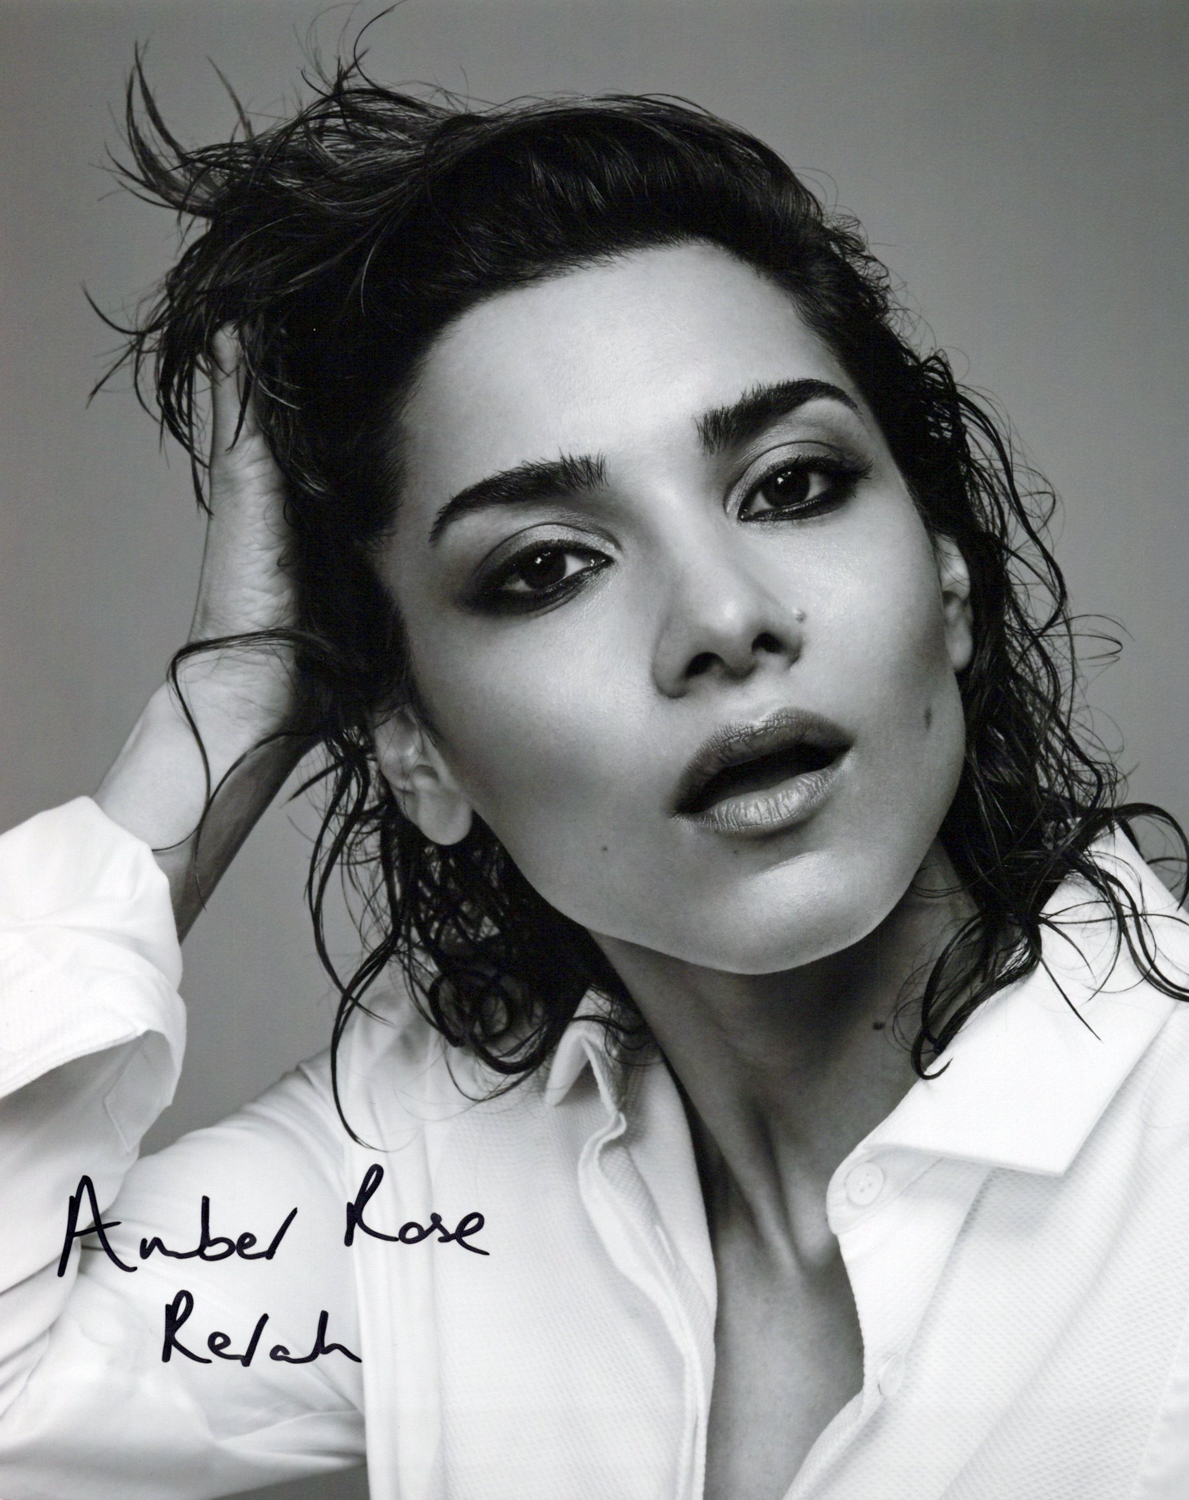 Amber Rose Revah Original Autogramm auf Foto 20x25cm - Punisher